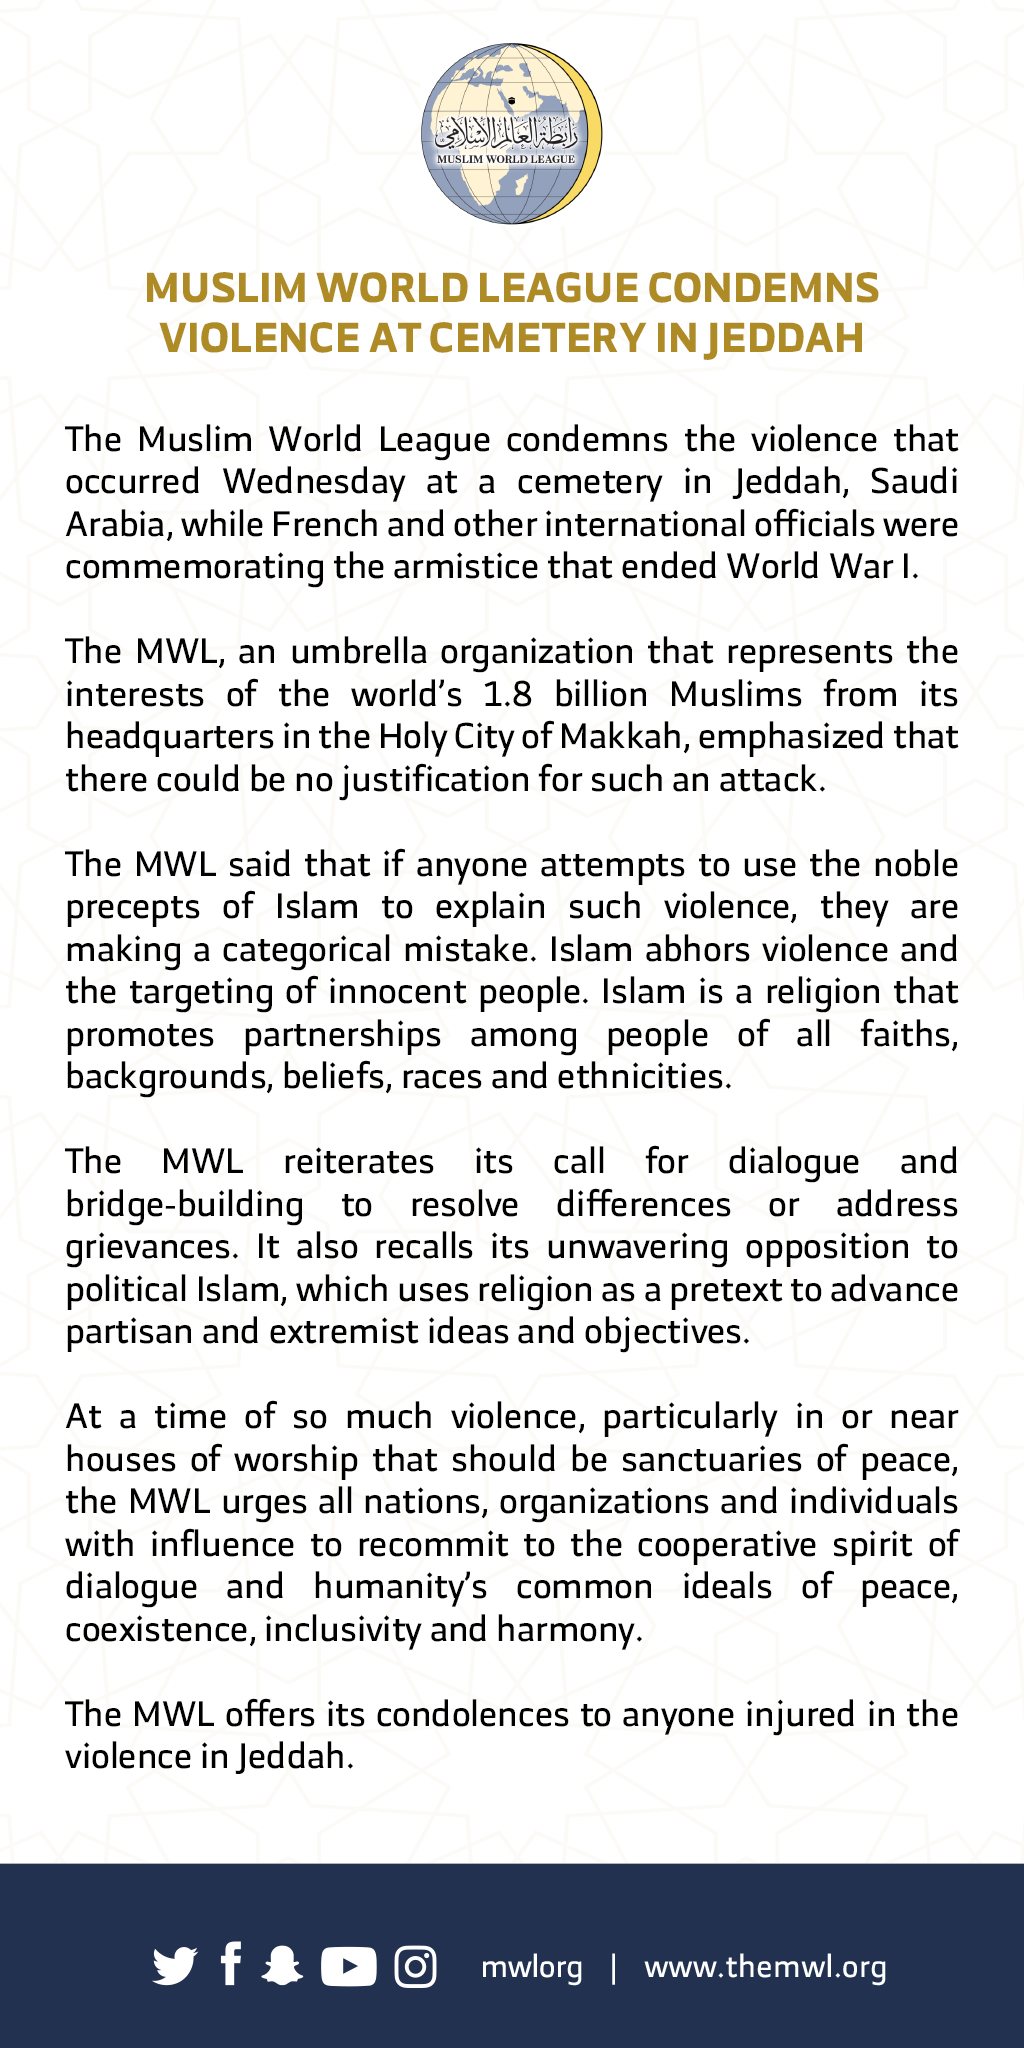 The Muslim World League condemns today's violence at a cemetery in Jeddah. Read the latest statement from the HE Dr. Mohammad Alissa: